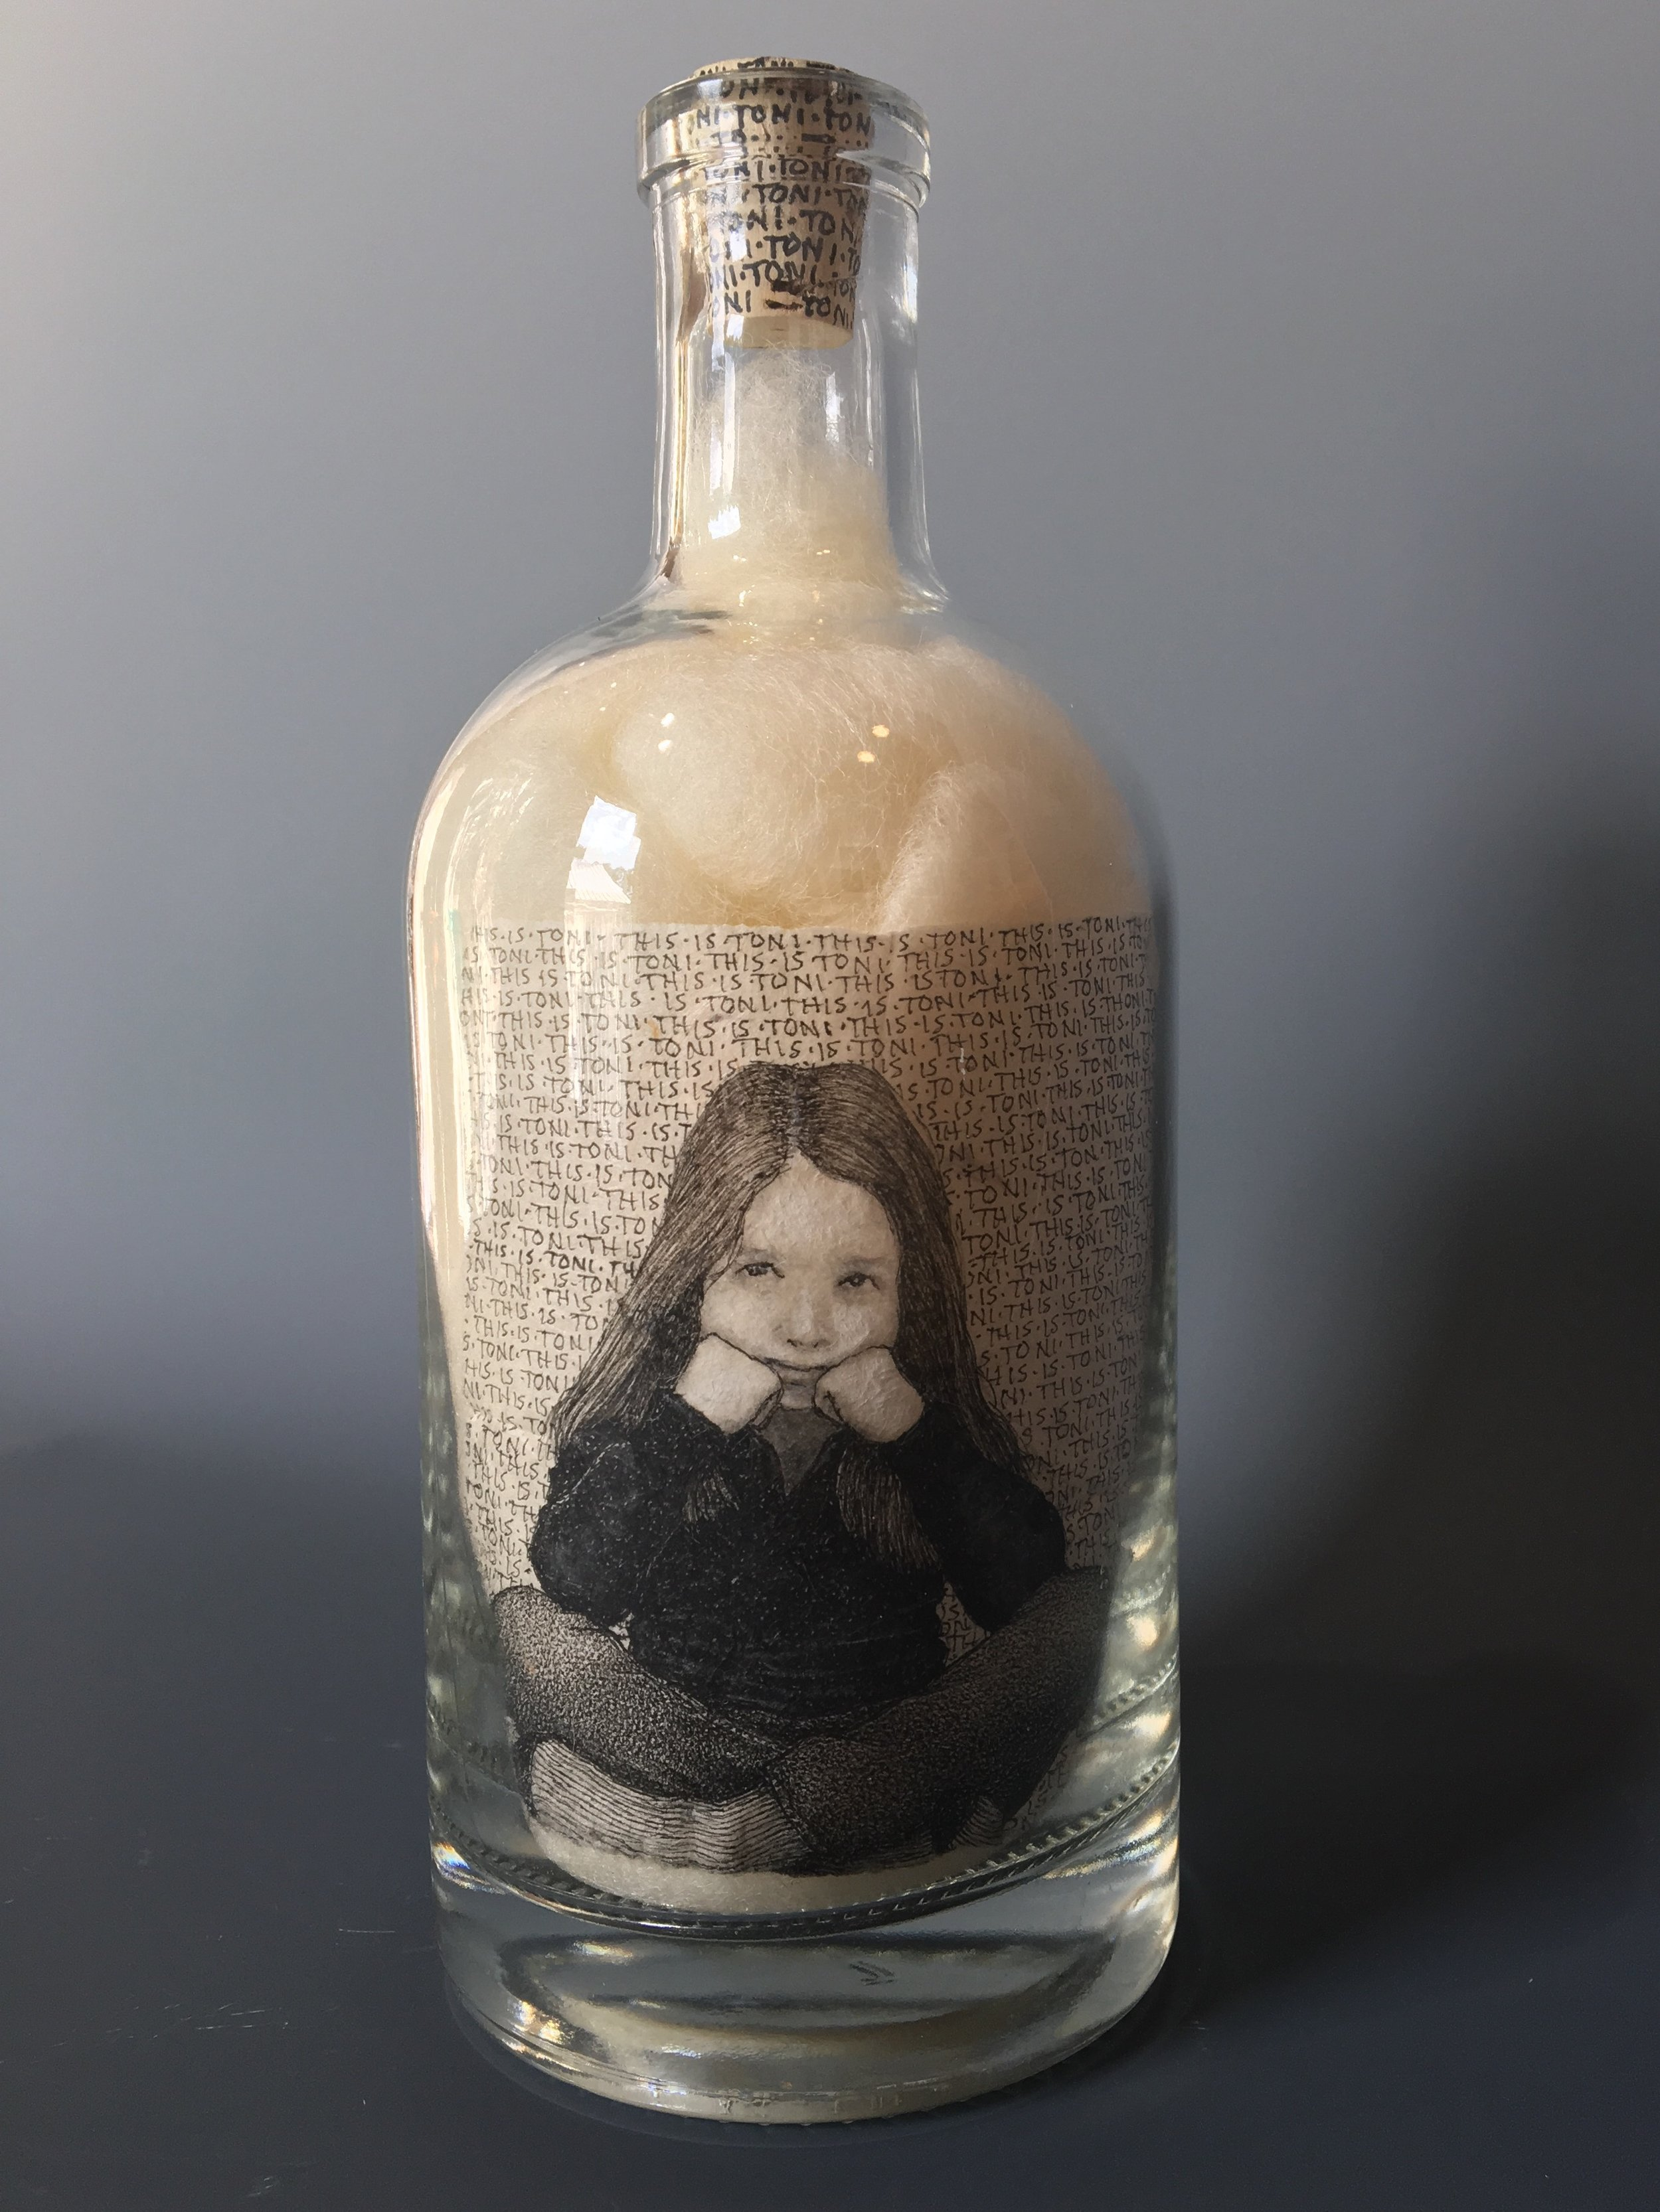 This is Toni  —  Nobody is Doing What She Wants!  bottle drawing; ink, graphite, white charcoal on handmade paper, glass bottle, wool